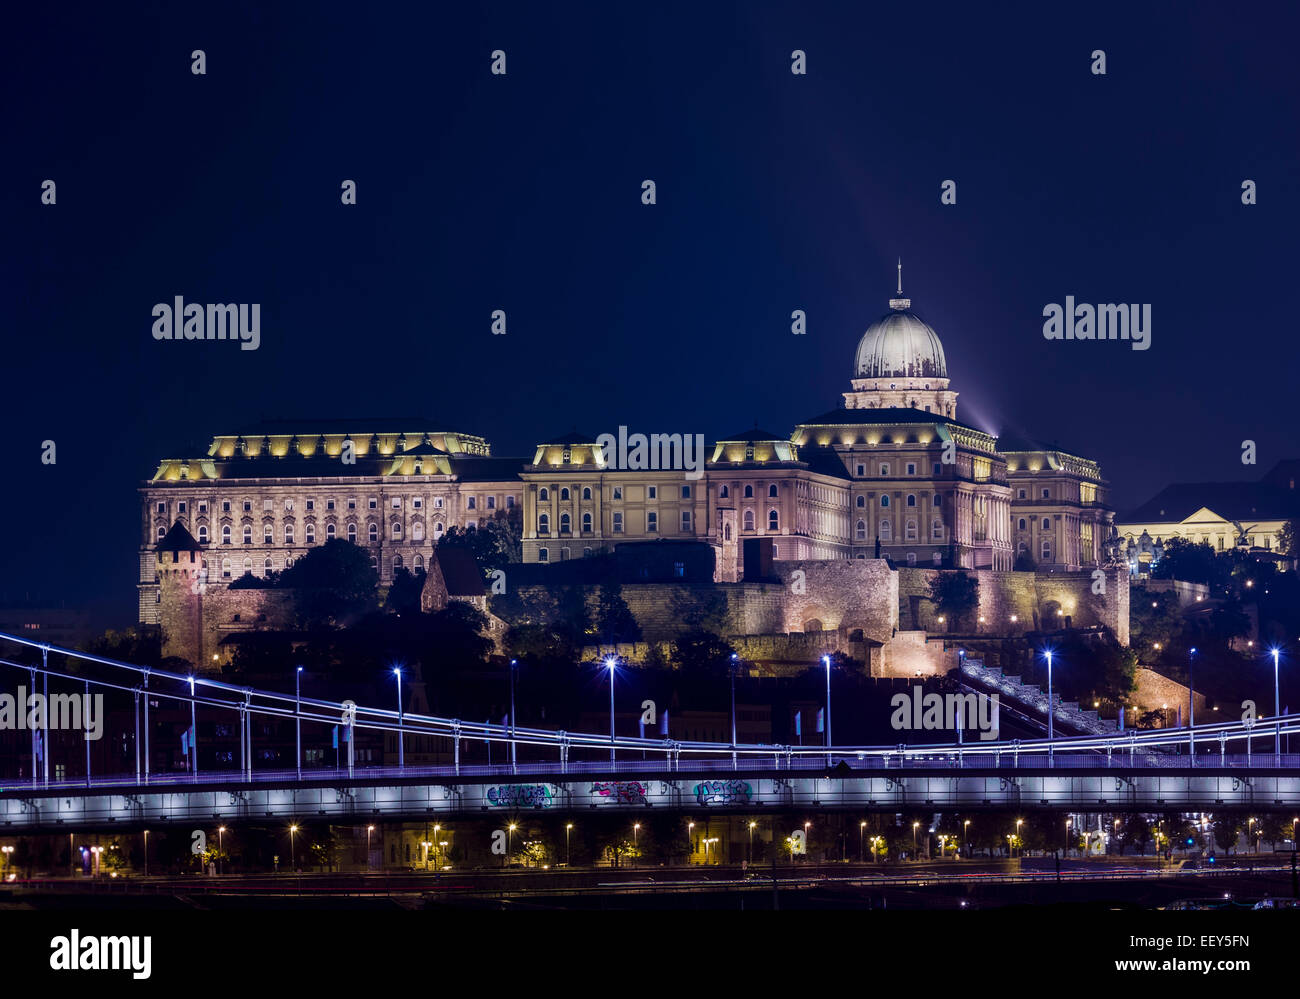 Night shot of the illuminated Buda Castle and Castle District in Budapest, Hungary - Stock Image